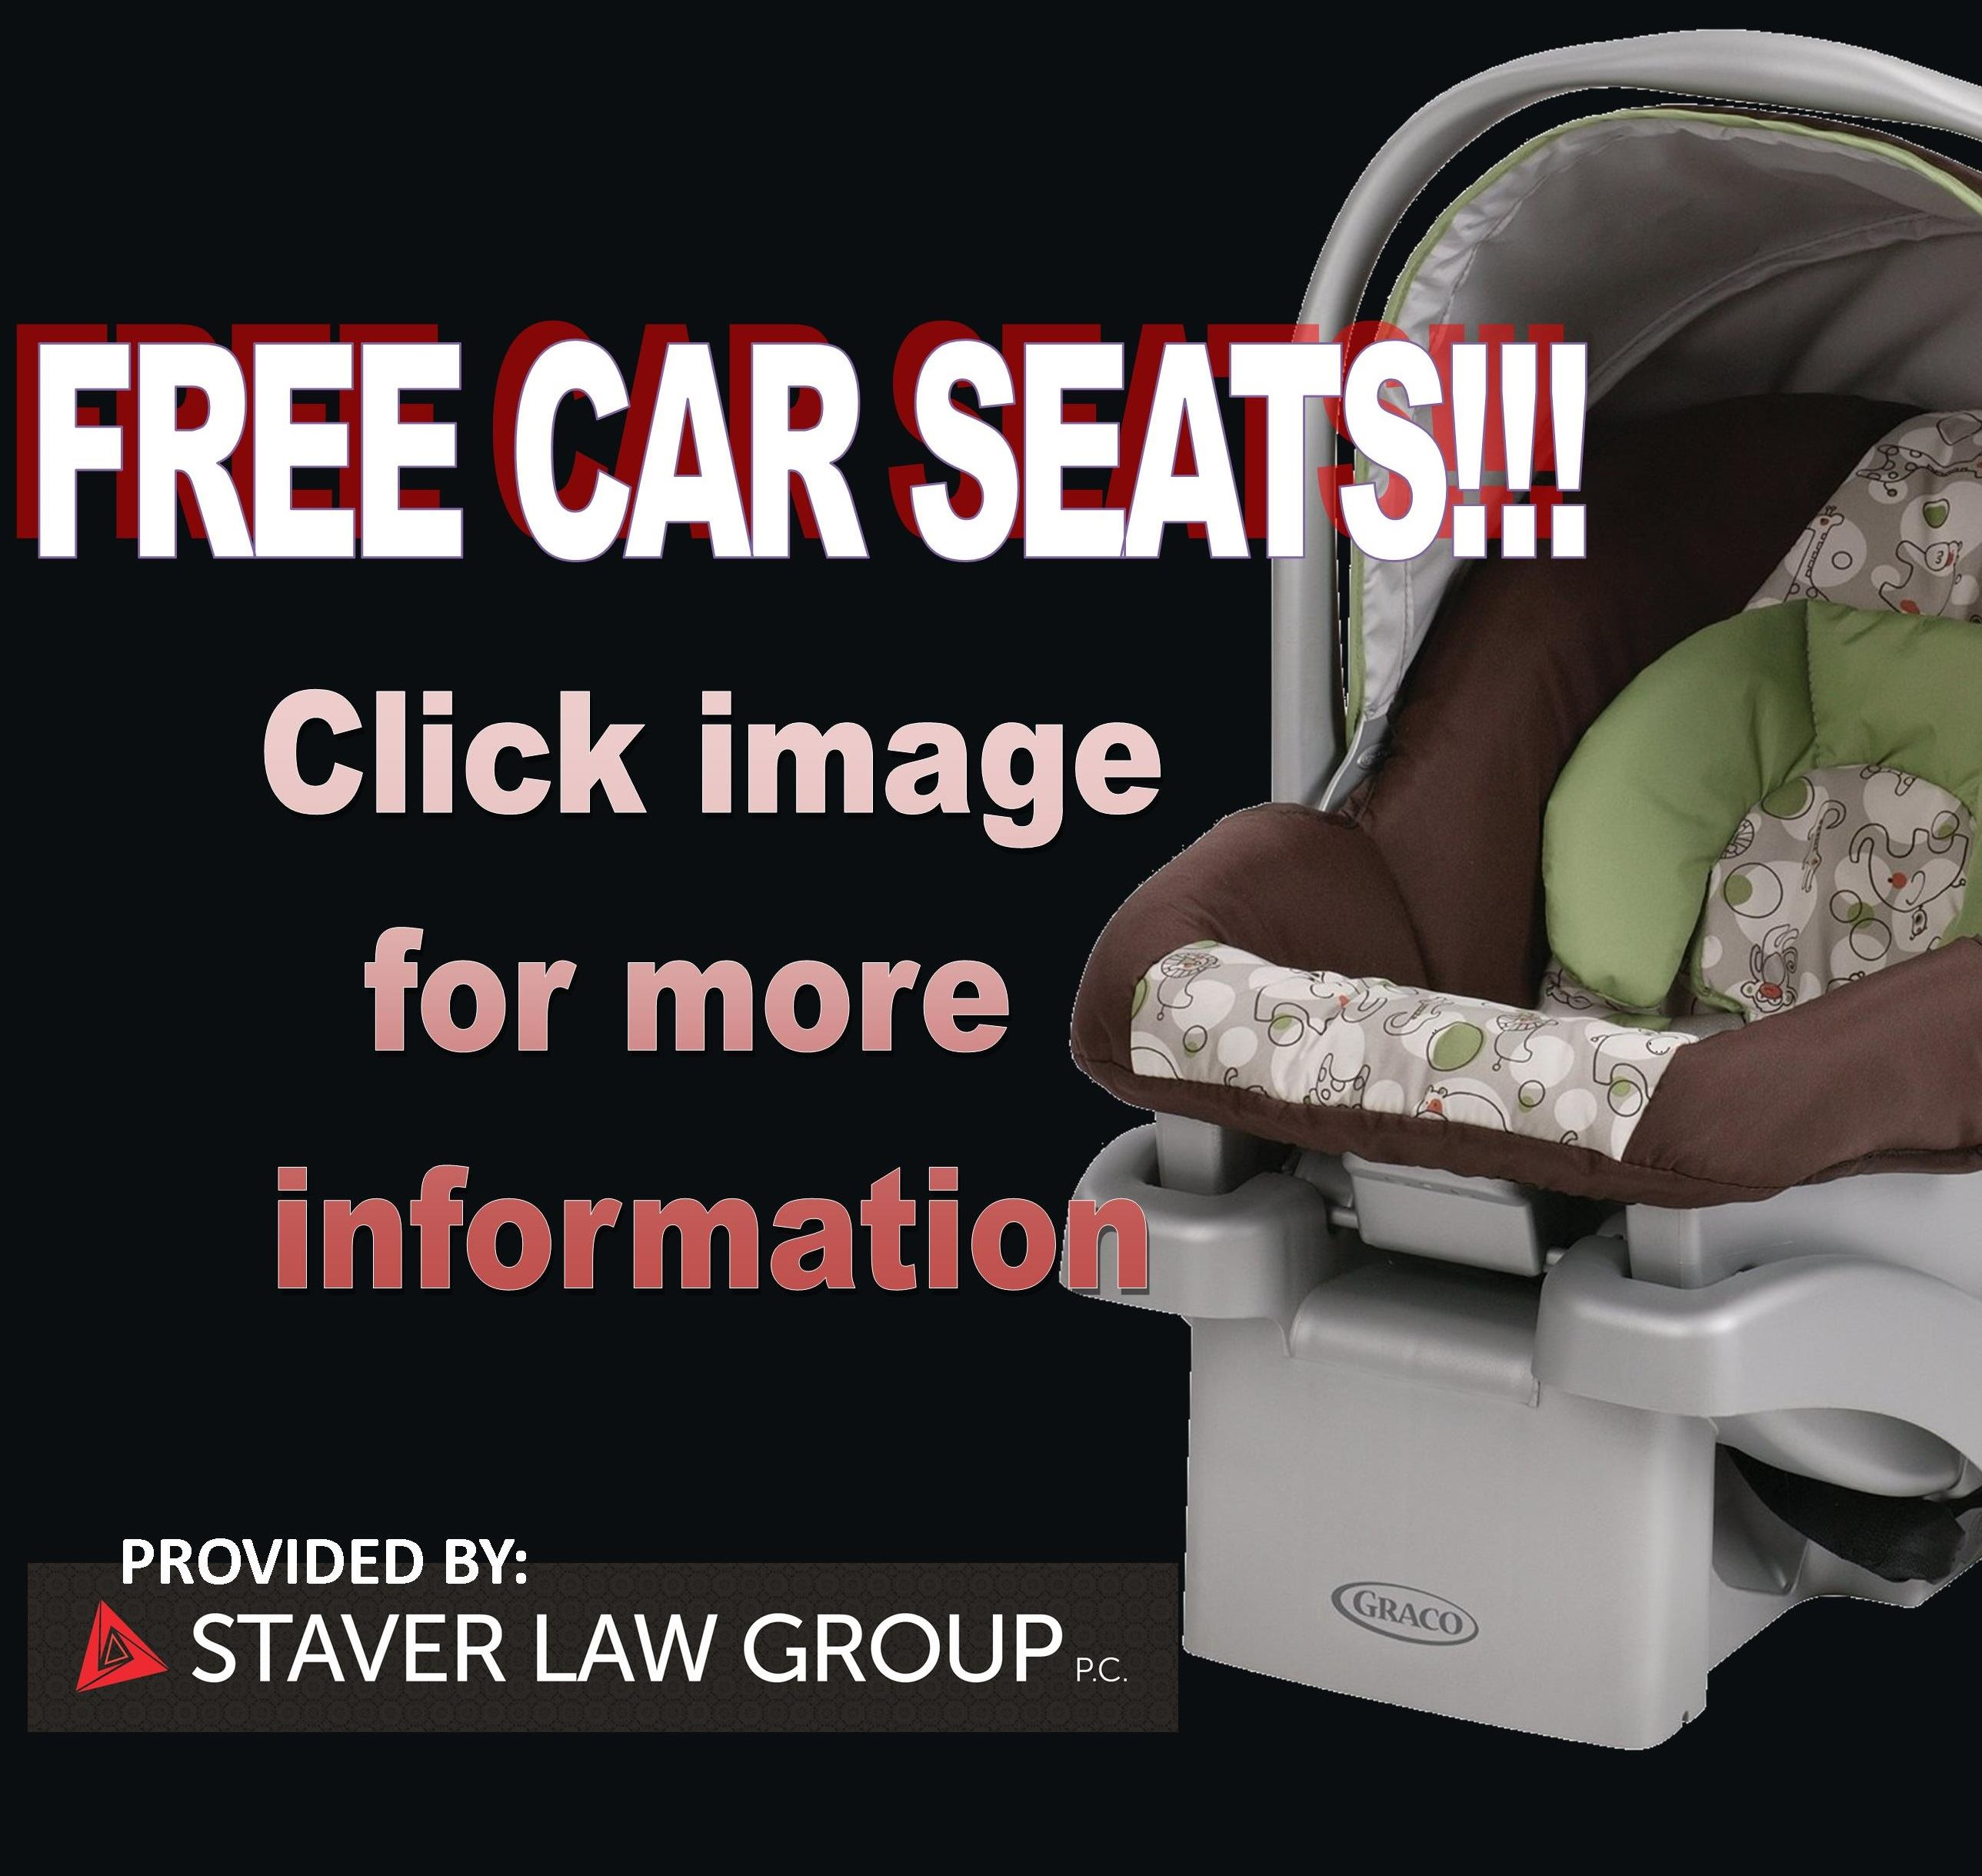 Free Car Seats Provided by Starver Law Group--Click Image for more information